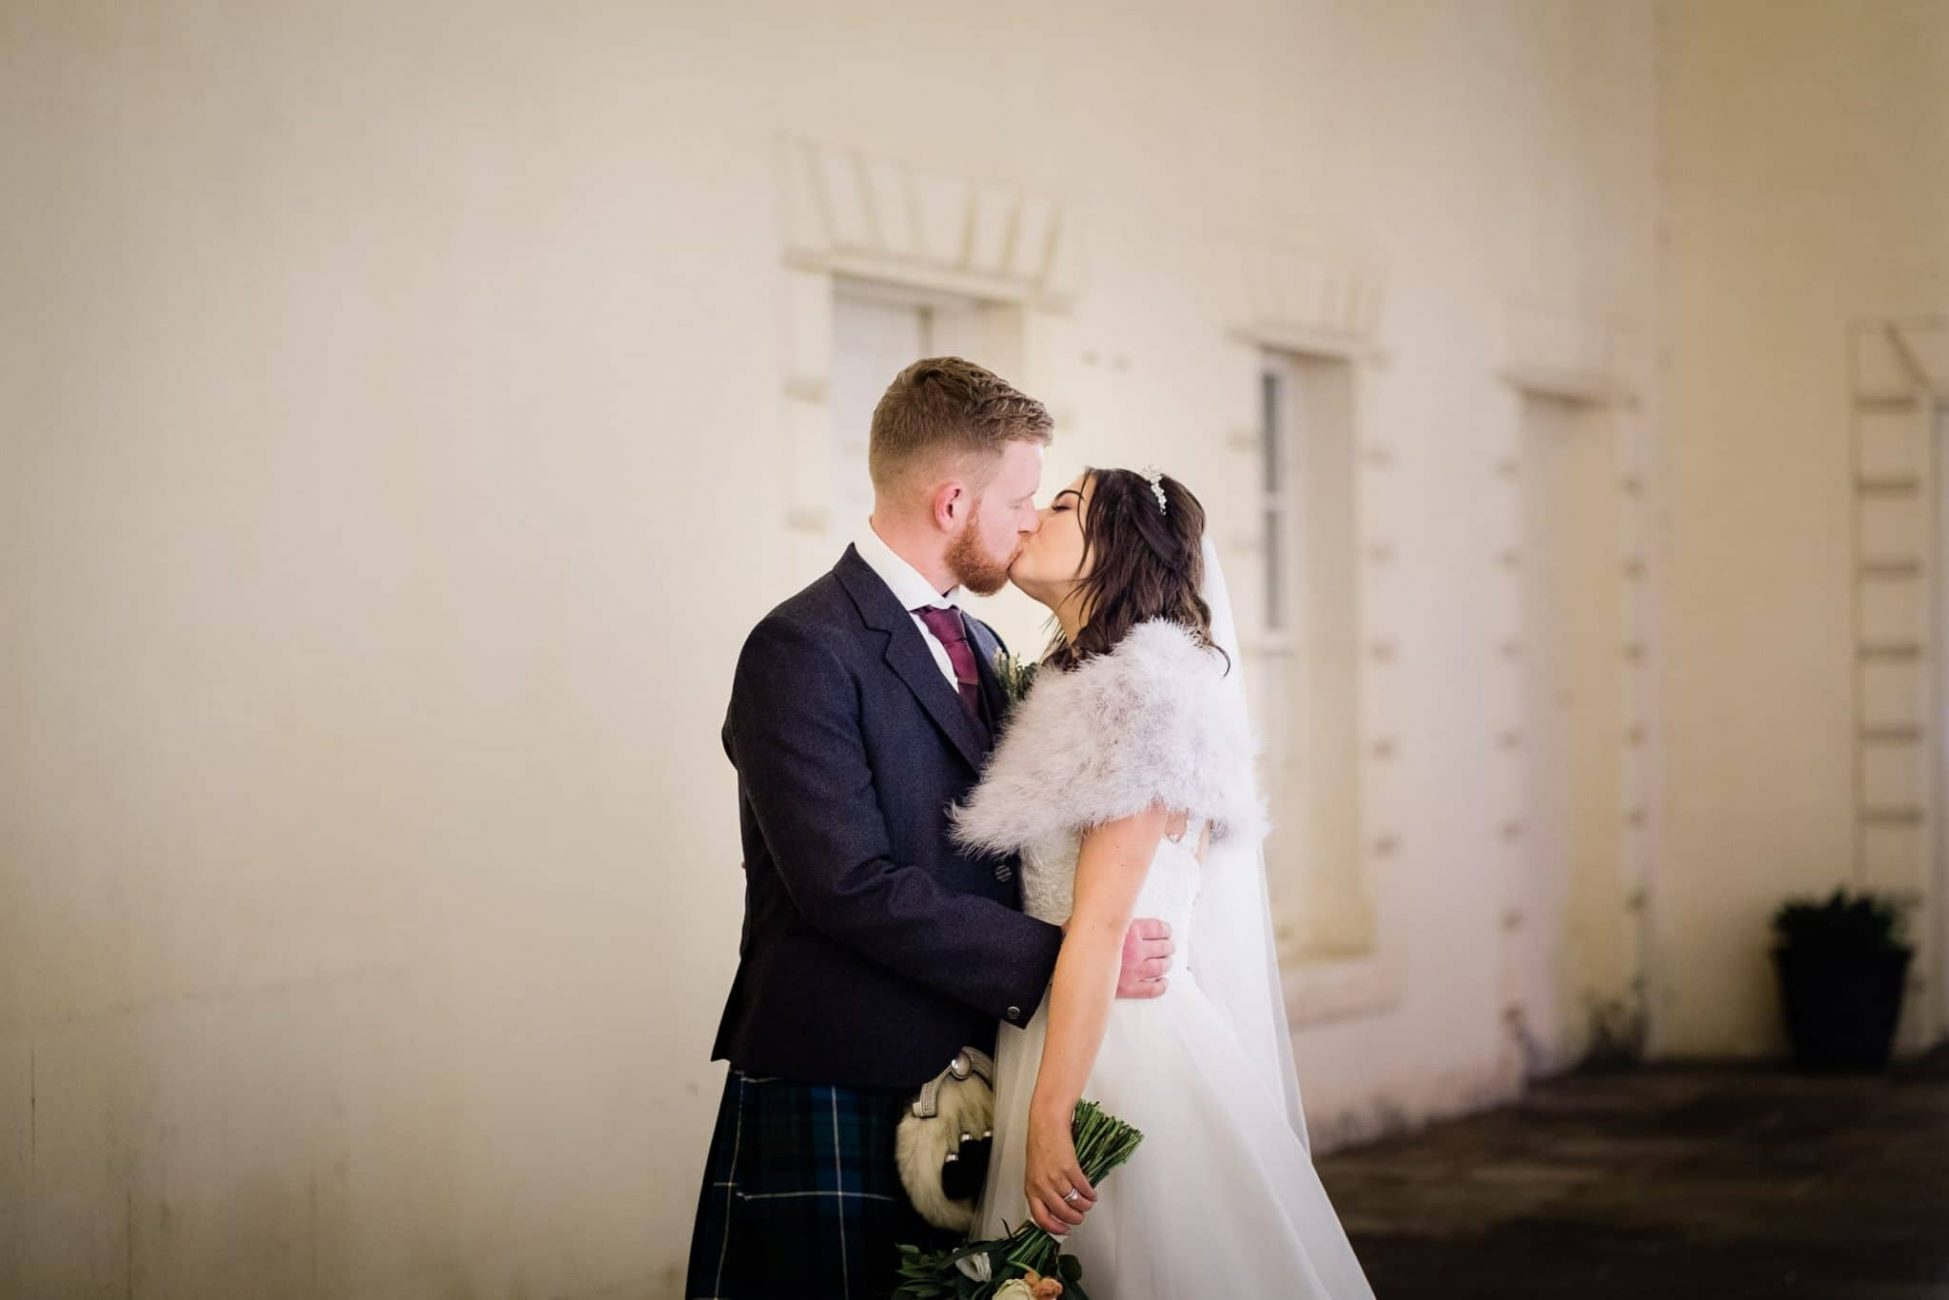 A wedding portrait at Hopetoun House